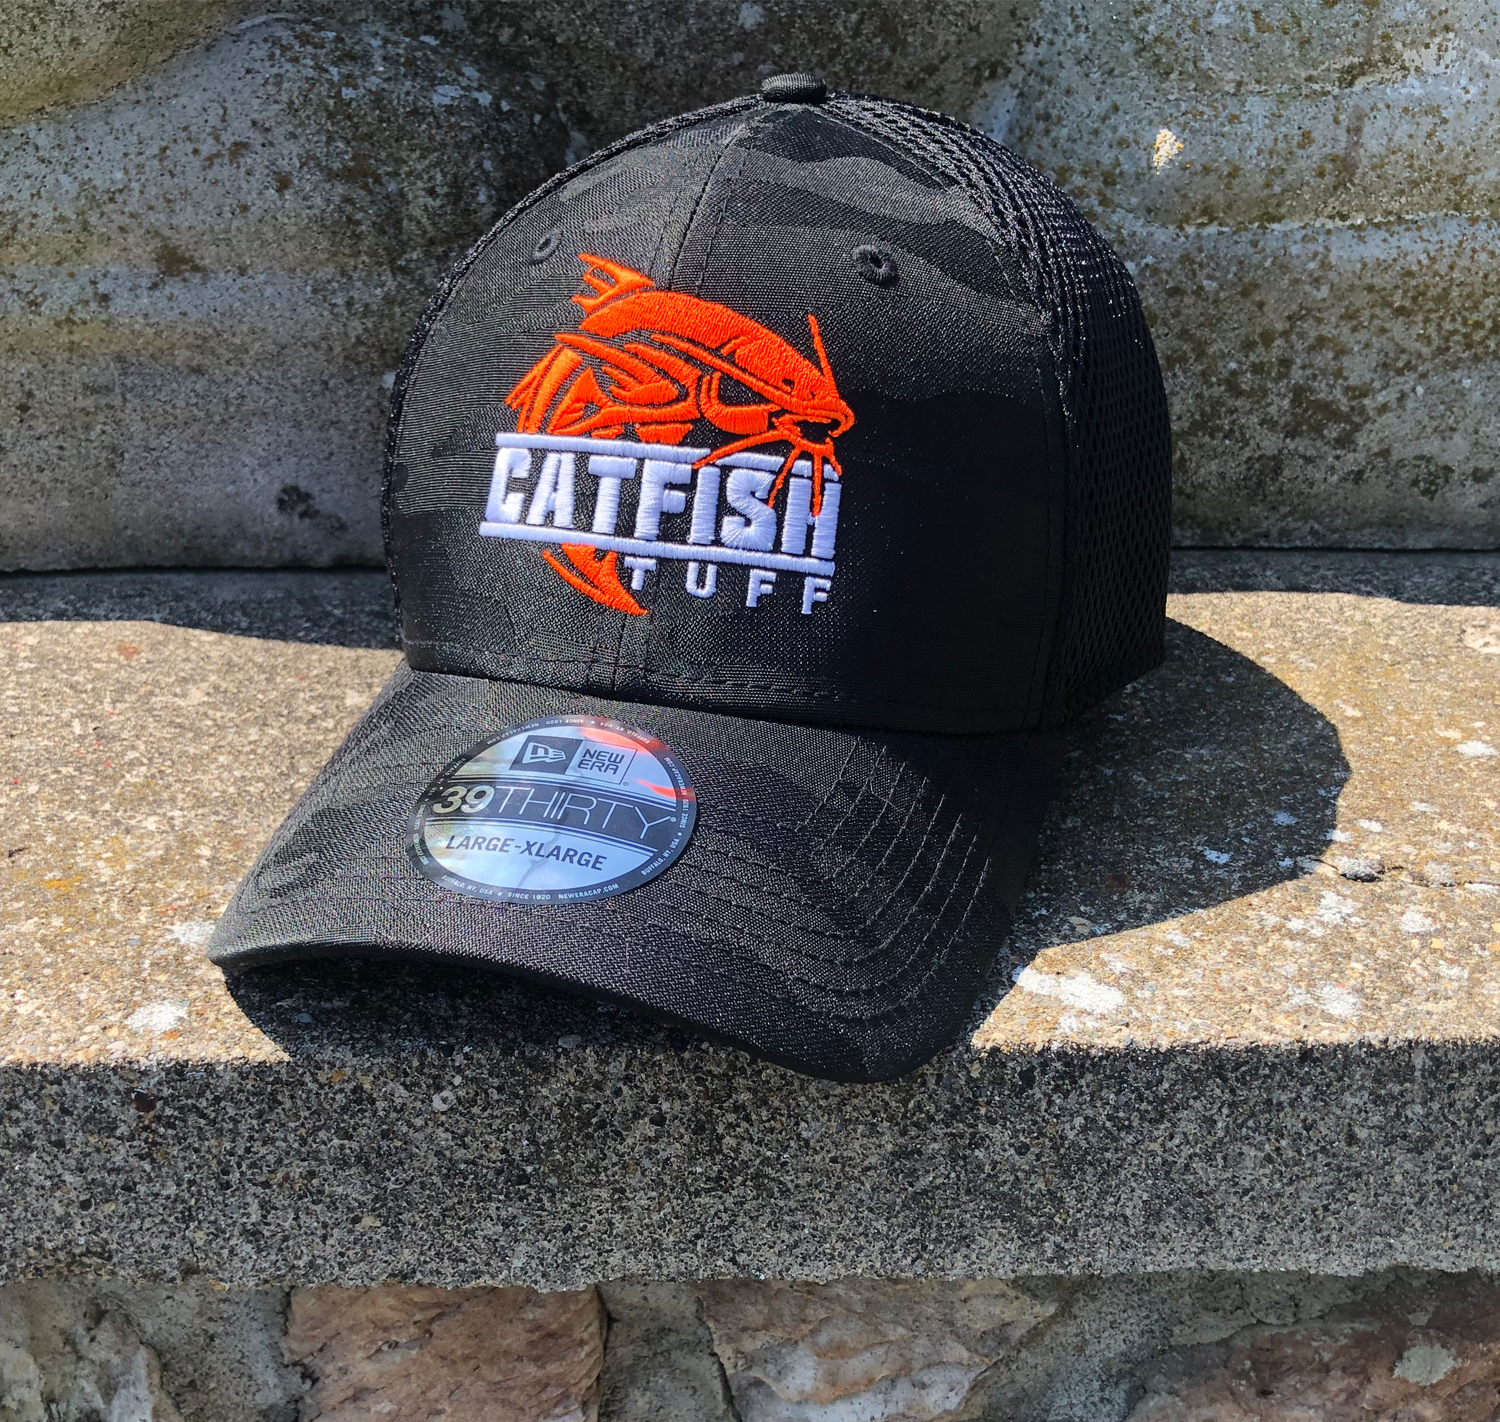 CatFish Tuff - Neon Orange  -  New Era ® Tonal Black Camo Stretch Tech Mesh Cap